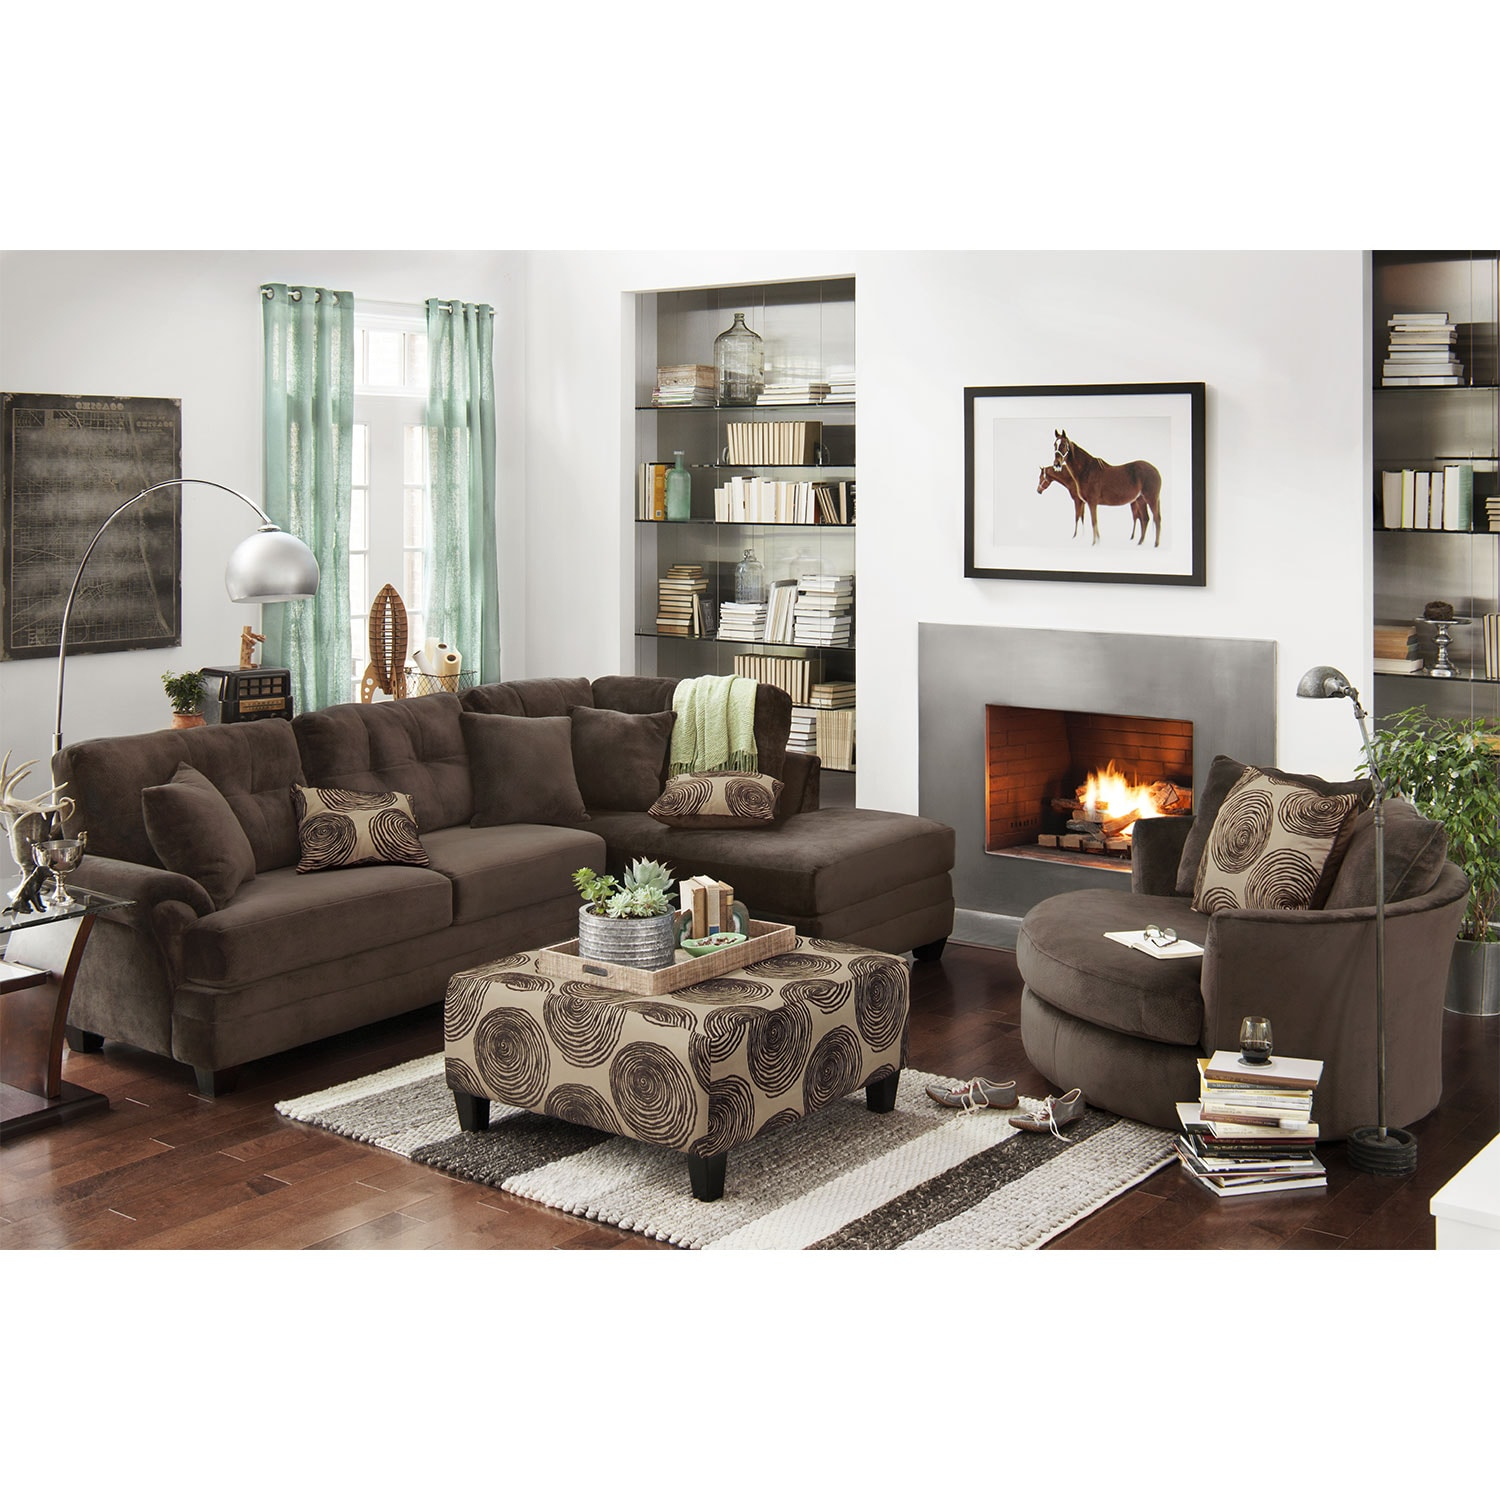 Furniture Com: Cordelle 2-Piece Sectional With Right-Facing Chaise